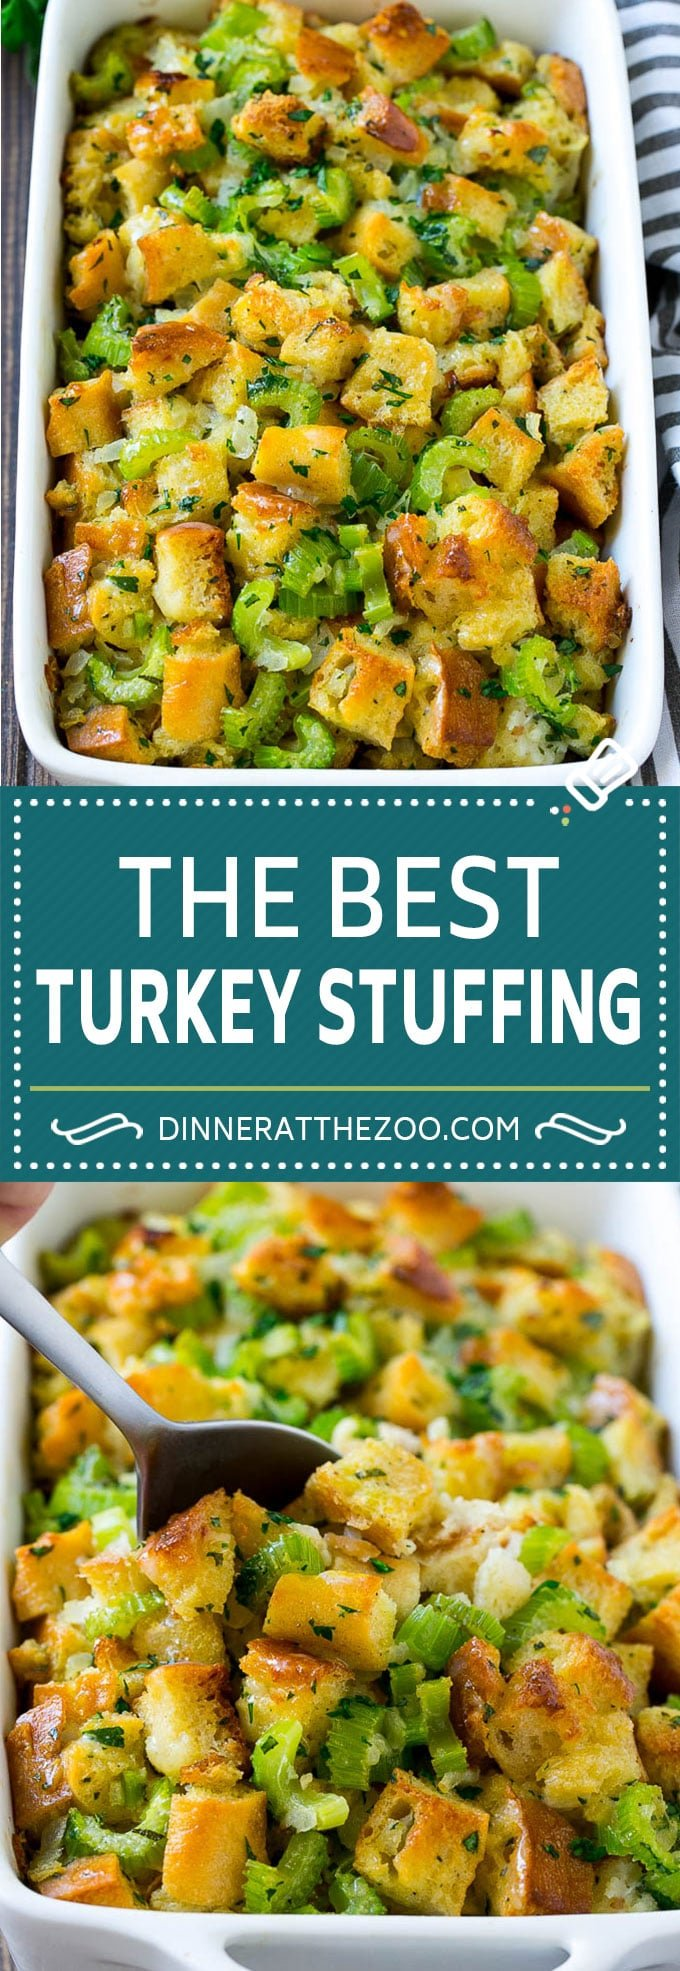 Turkey Stuffing Recipe | Thanksgiving Stuffing | Classic Stuffing #thanksgiving #stuffing #sidedish #fall #dinneratthezoo